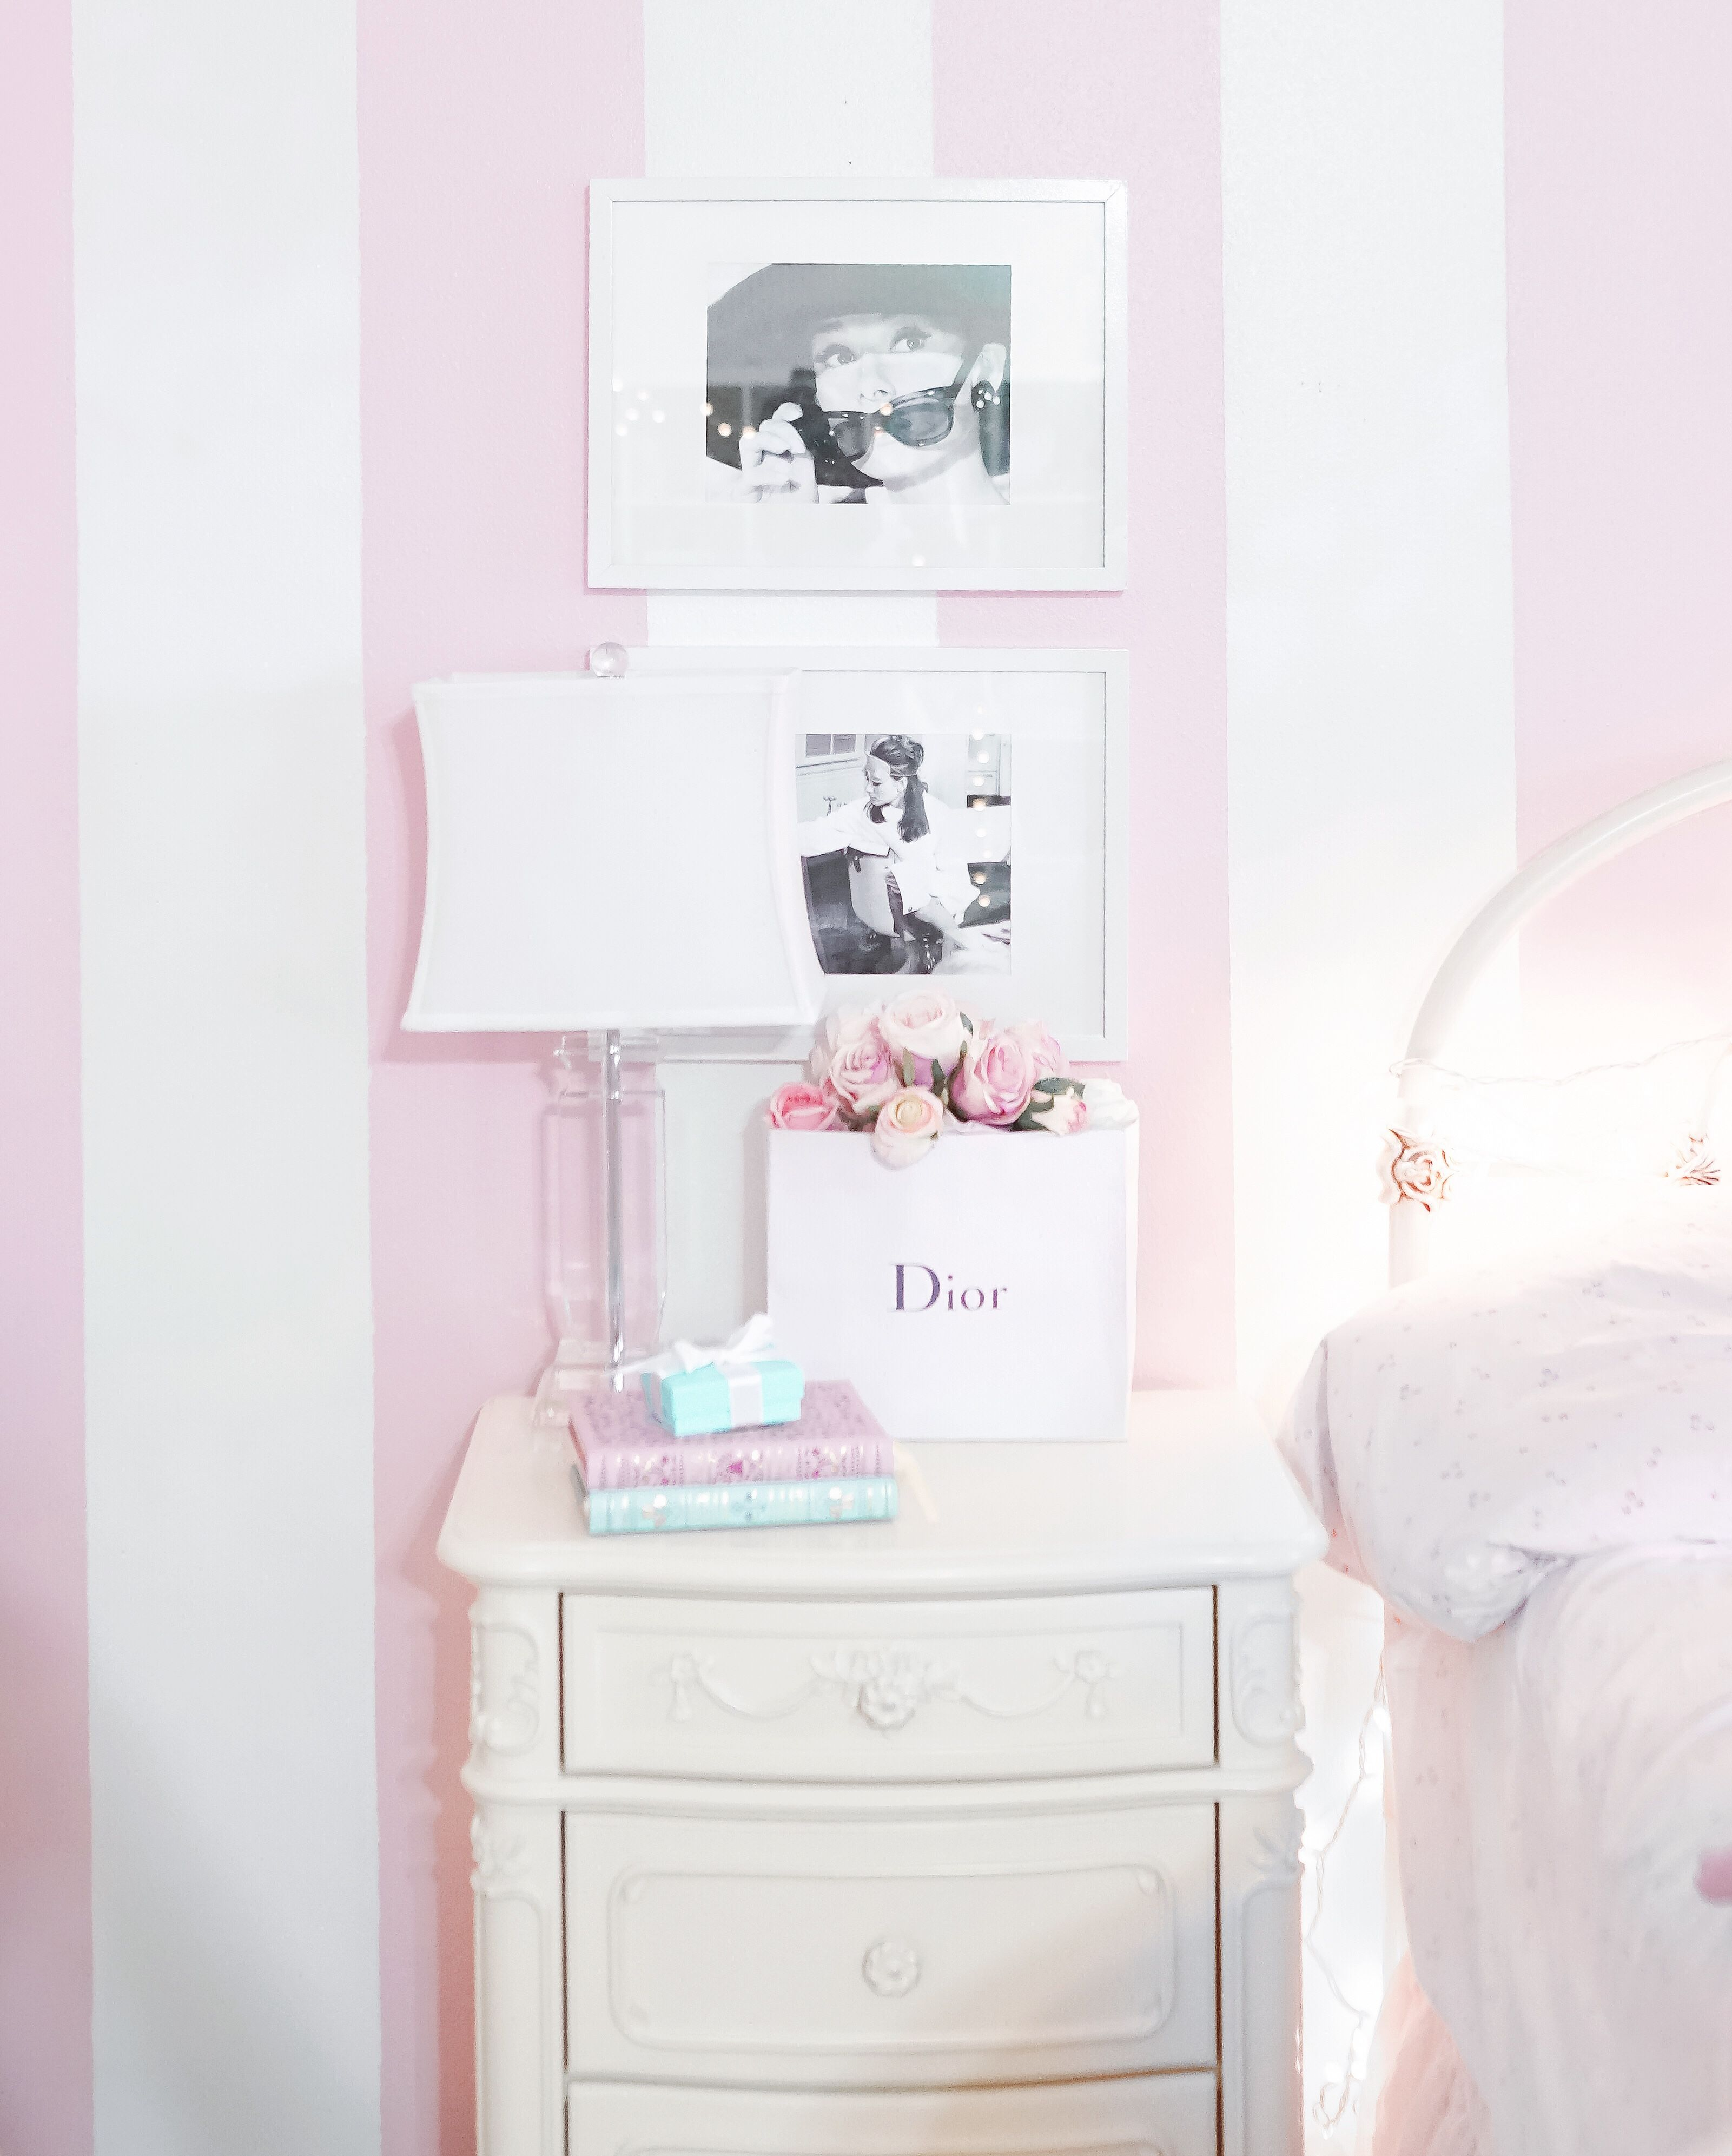 Pink And White Striped Wall Pink Aesthetic Pinkaesthetic Pink Walls Pink Decor Feminine Home Feminine Pink Walls Girls Room Striped Accent Wall Pink Room